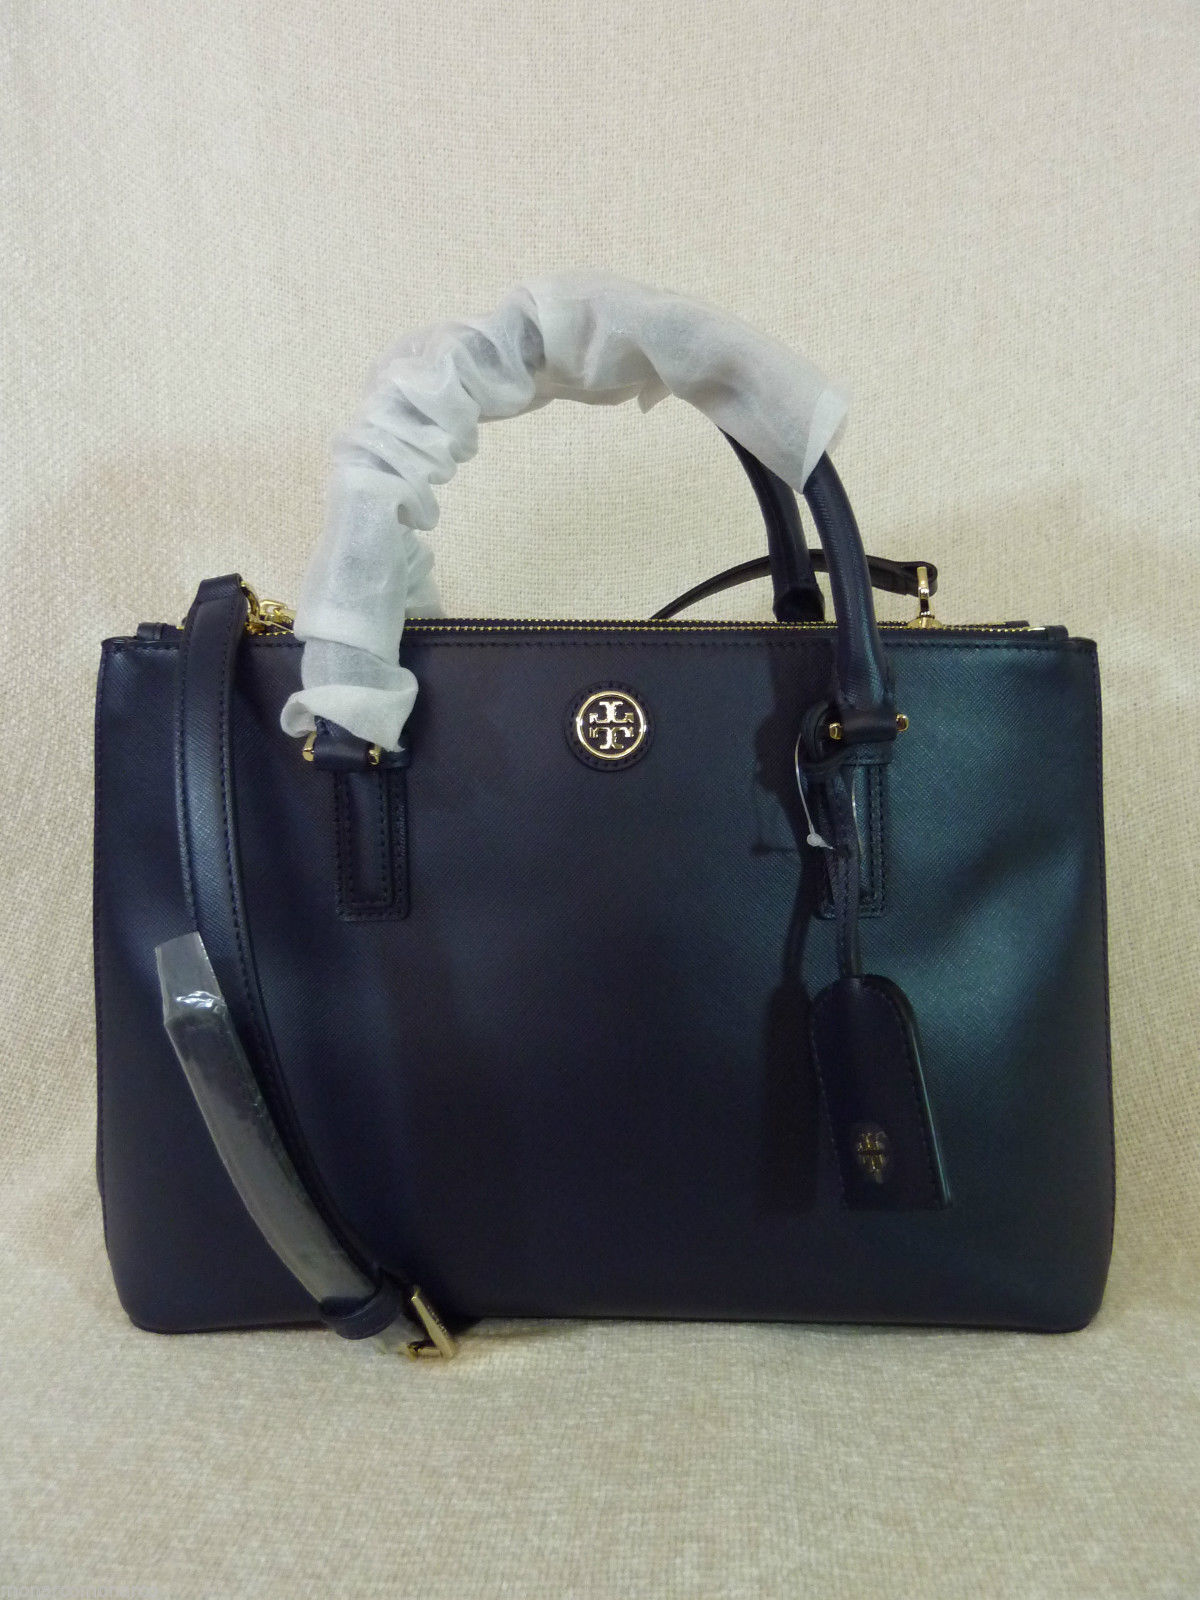 Tory Burch Navy Blue Saffiano Leather Robinson Mini Double-Zip Tote $495 image 5